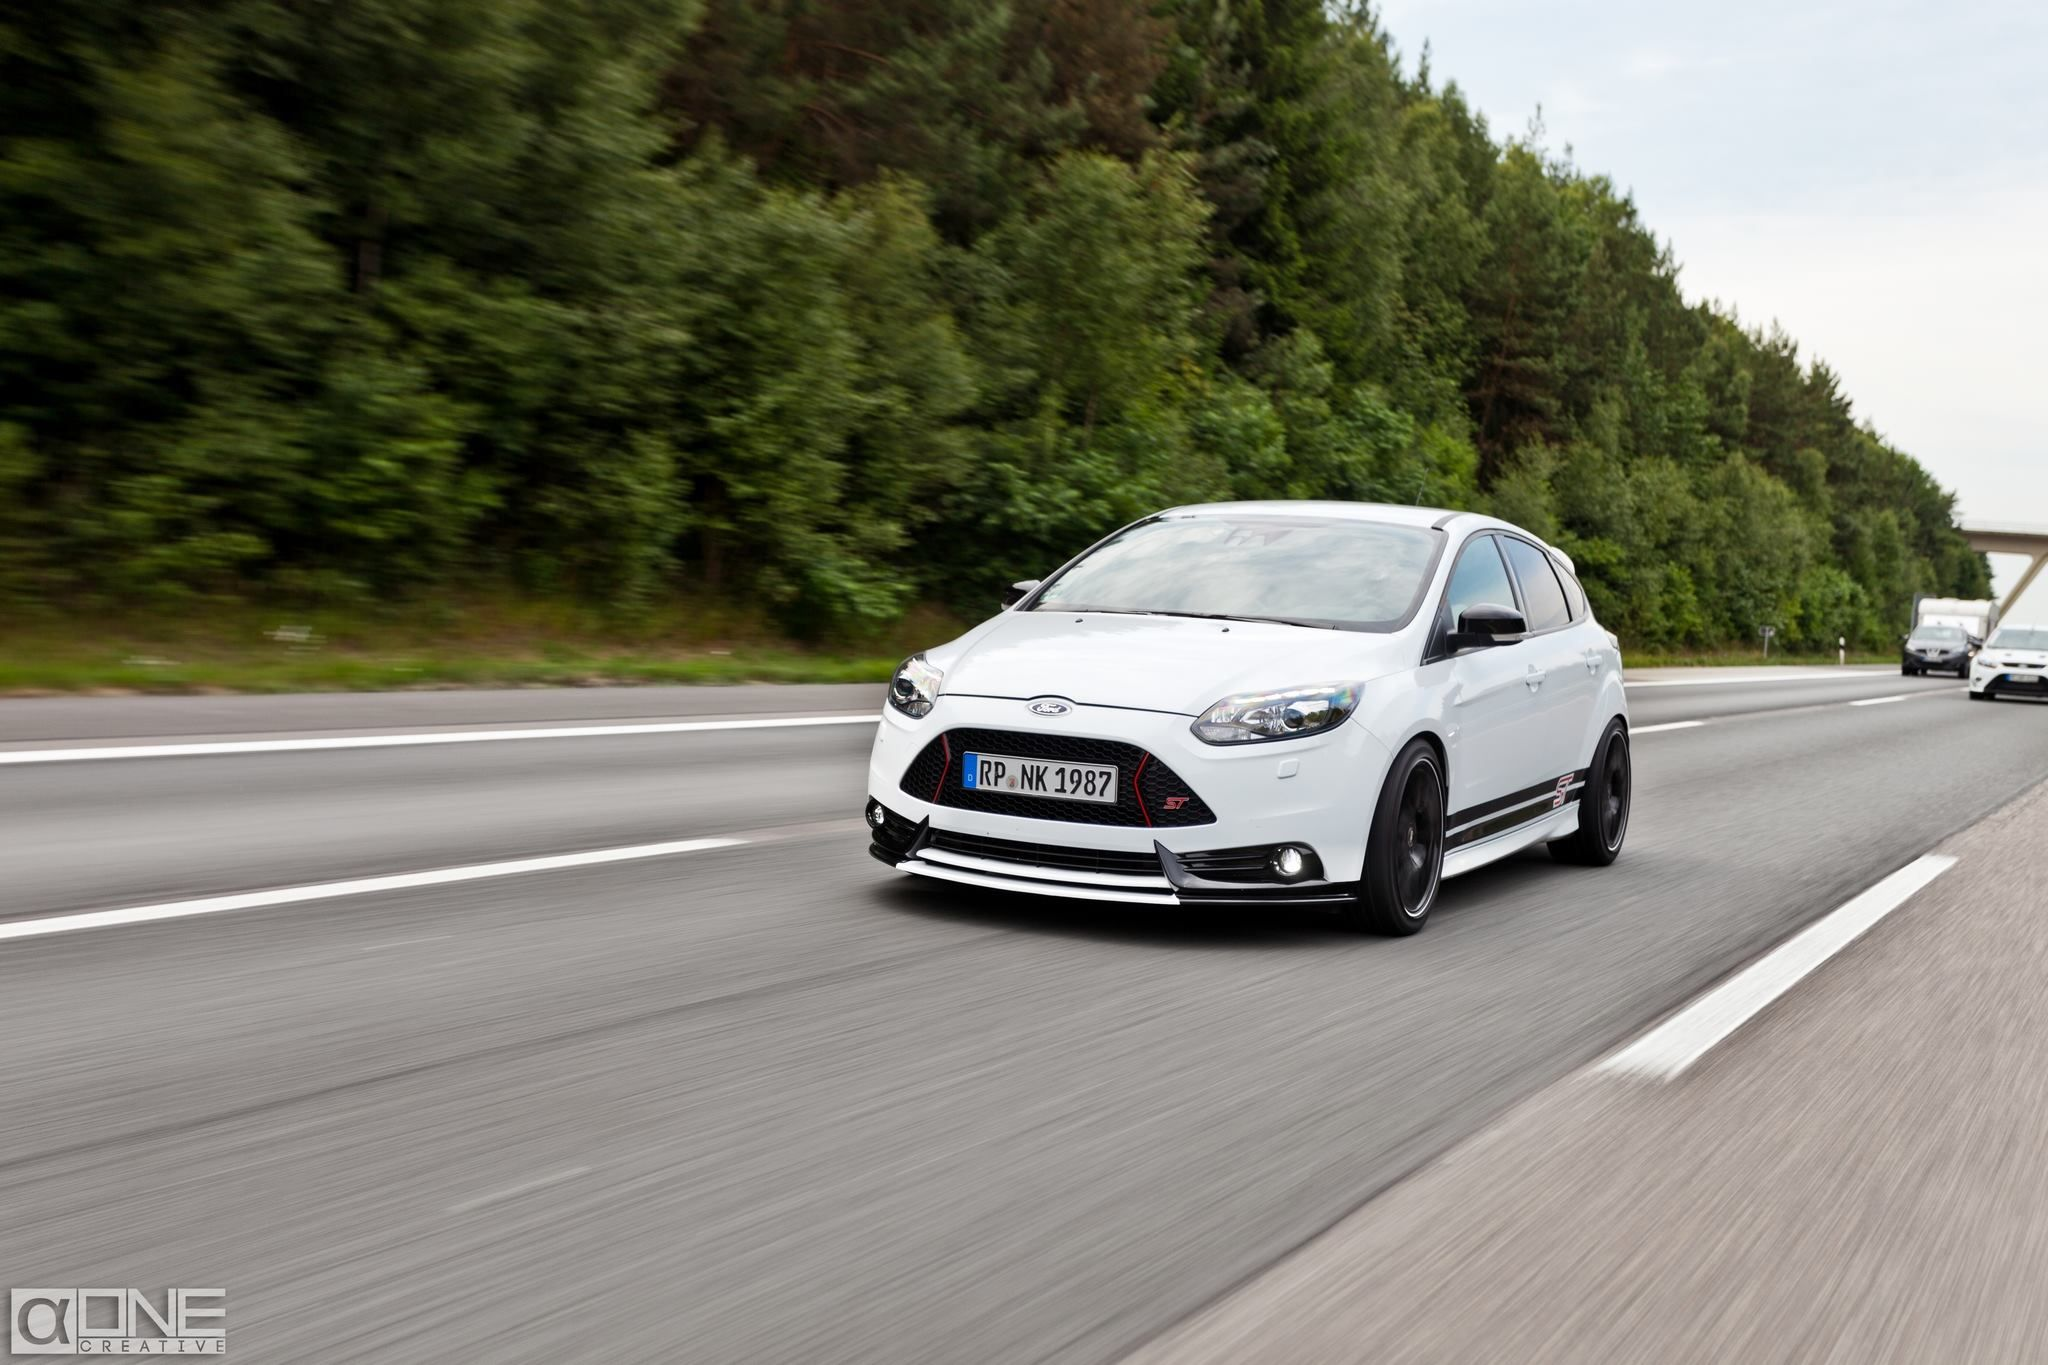 Ford Focus St White White Ford Focus St Tuning On Motorway Highway Autobahn In